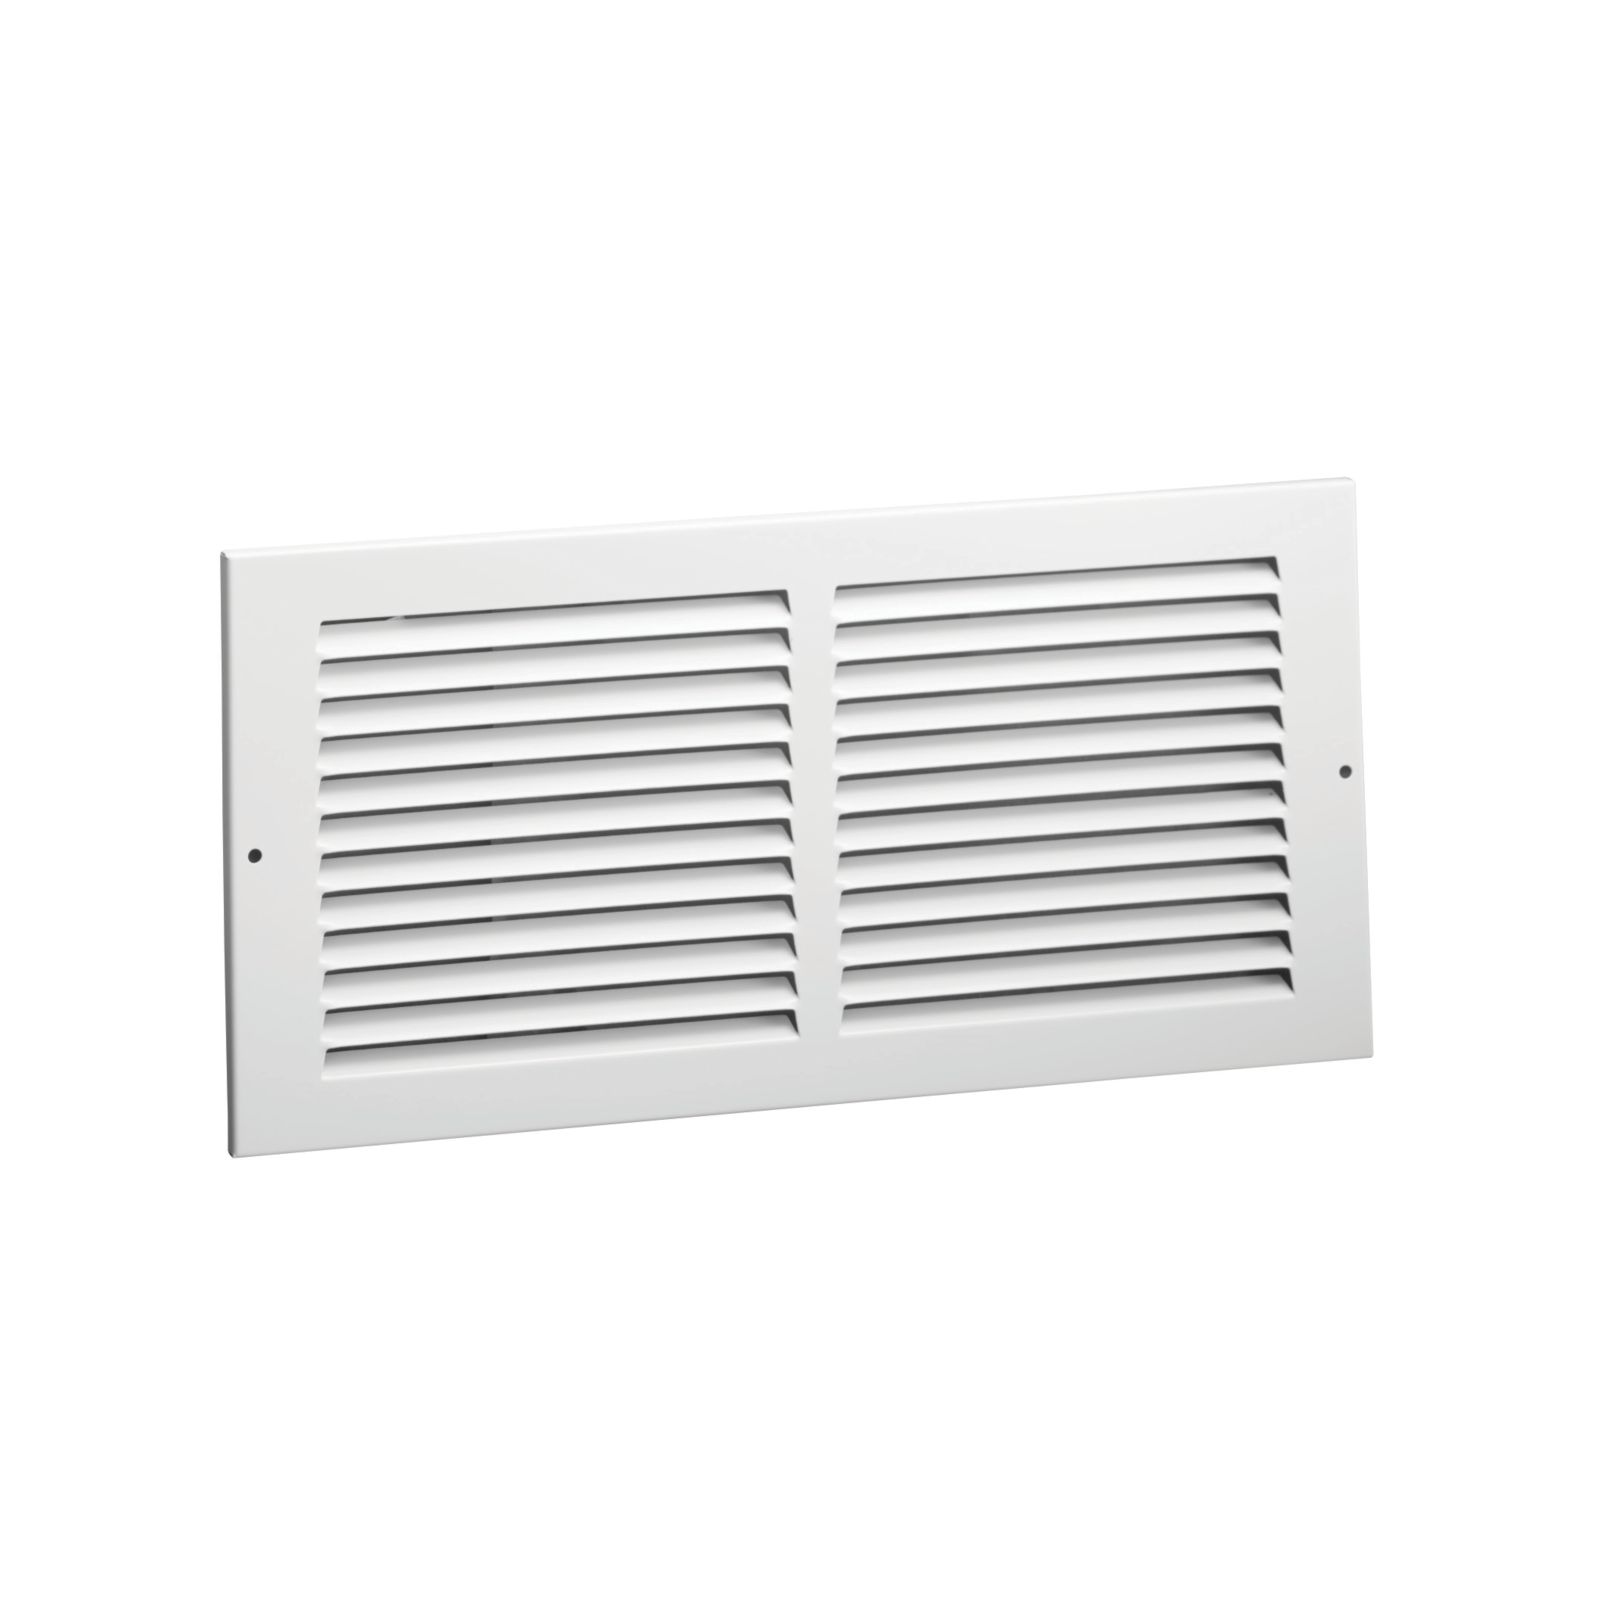 "Hart & Cooley 043353 - #672 Steel Return Air Grille, White Finish, 20"" X 12"""